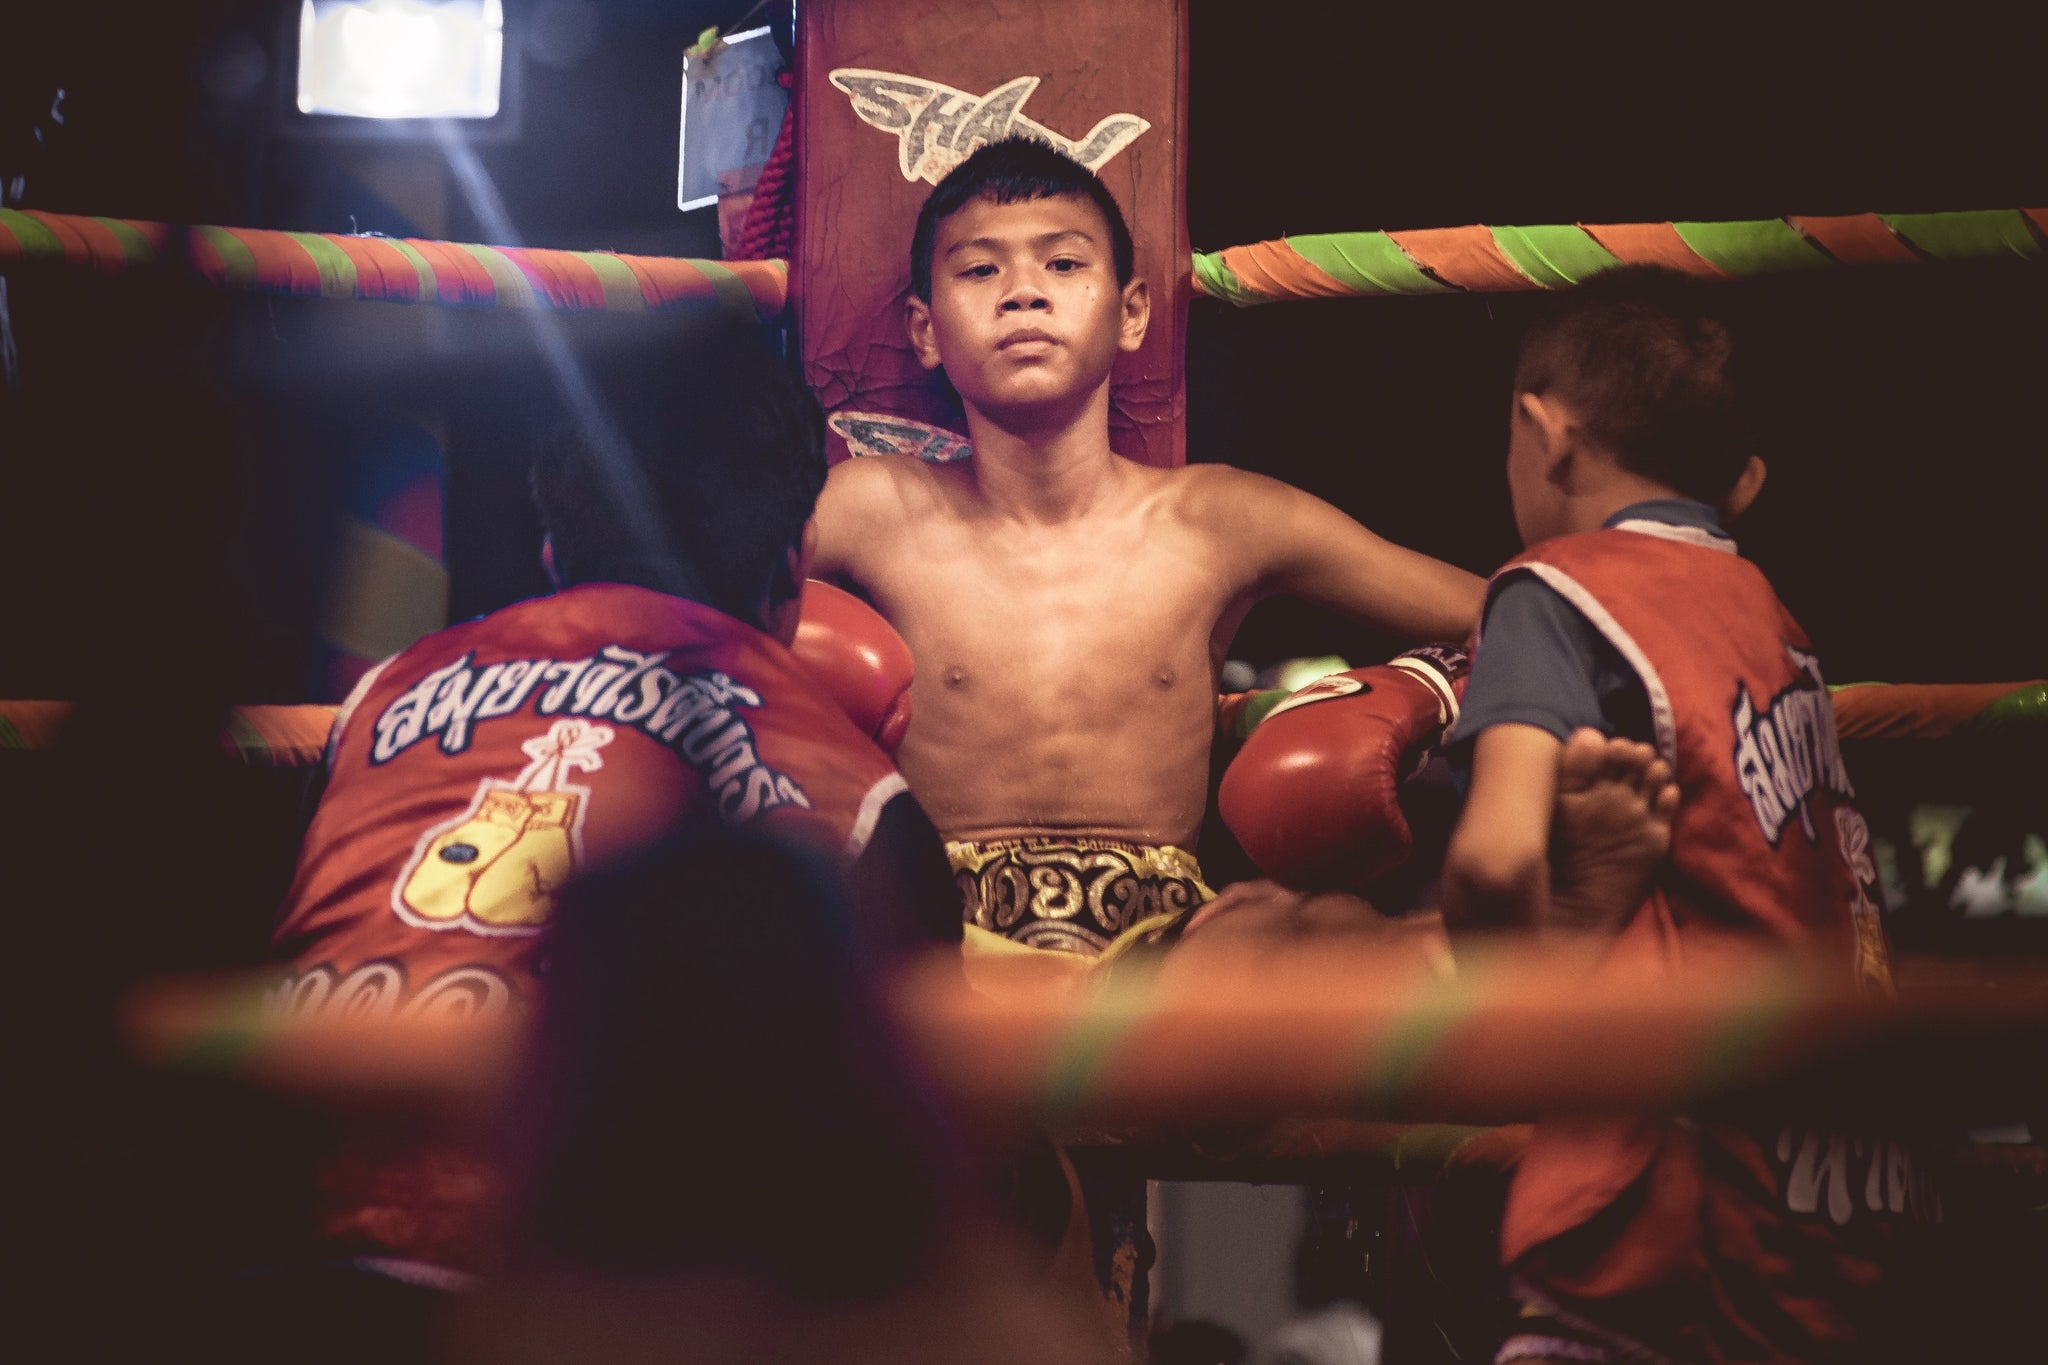 boxing equipment | kid boxer | gifts for boxing lovers